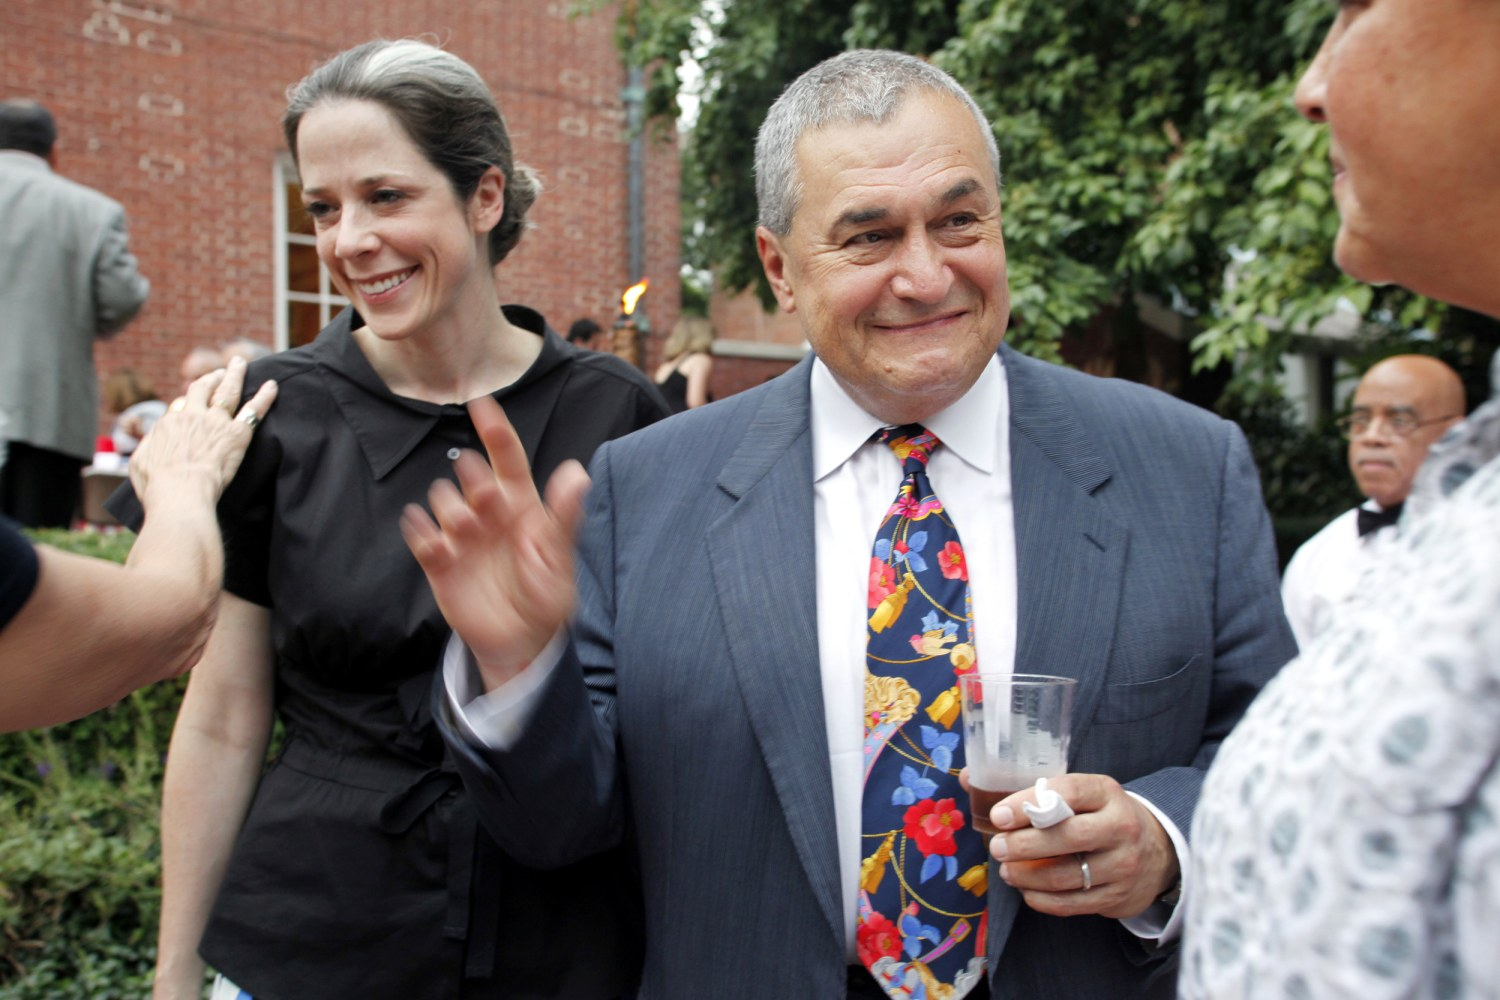 Mueller investigating Tony Podesta and Podesta Group